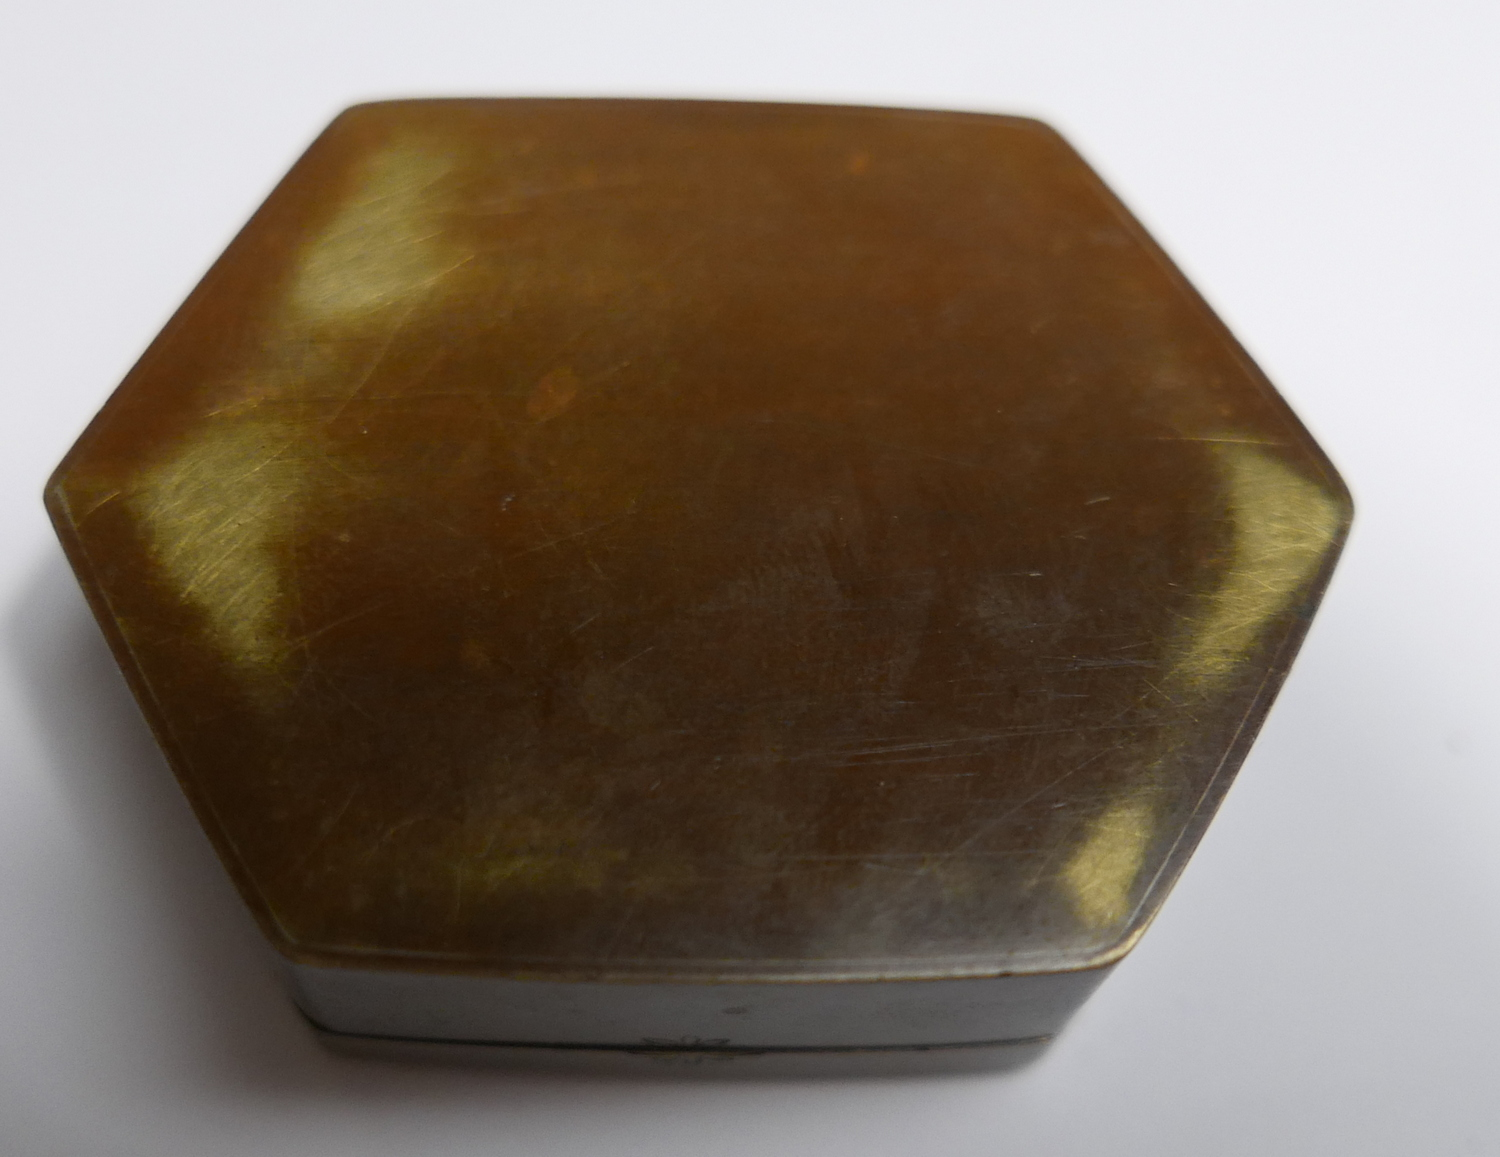 Lot 2 - Small Japanese Bronze Pot - 60mm x 45mm with insert Comb.